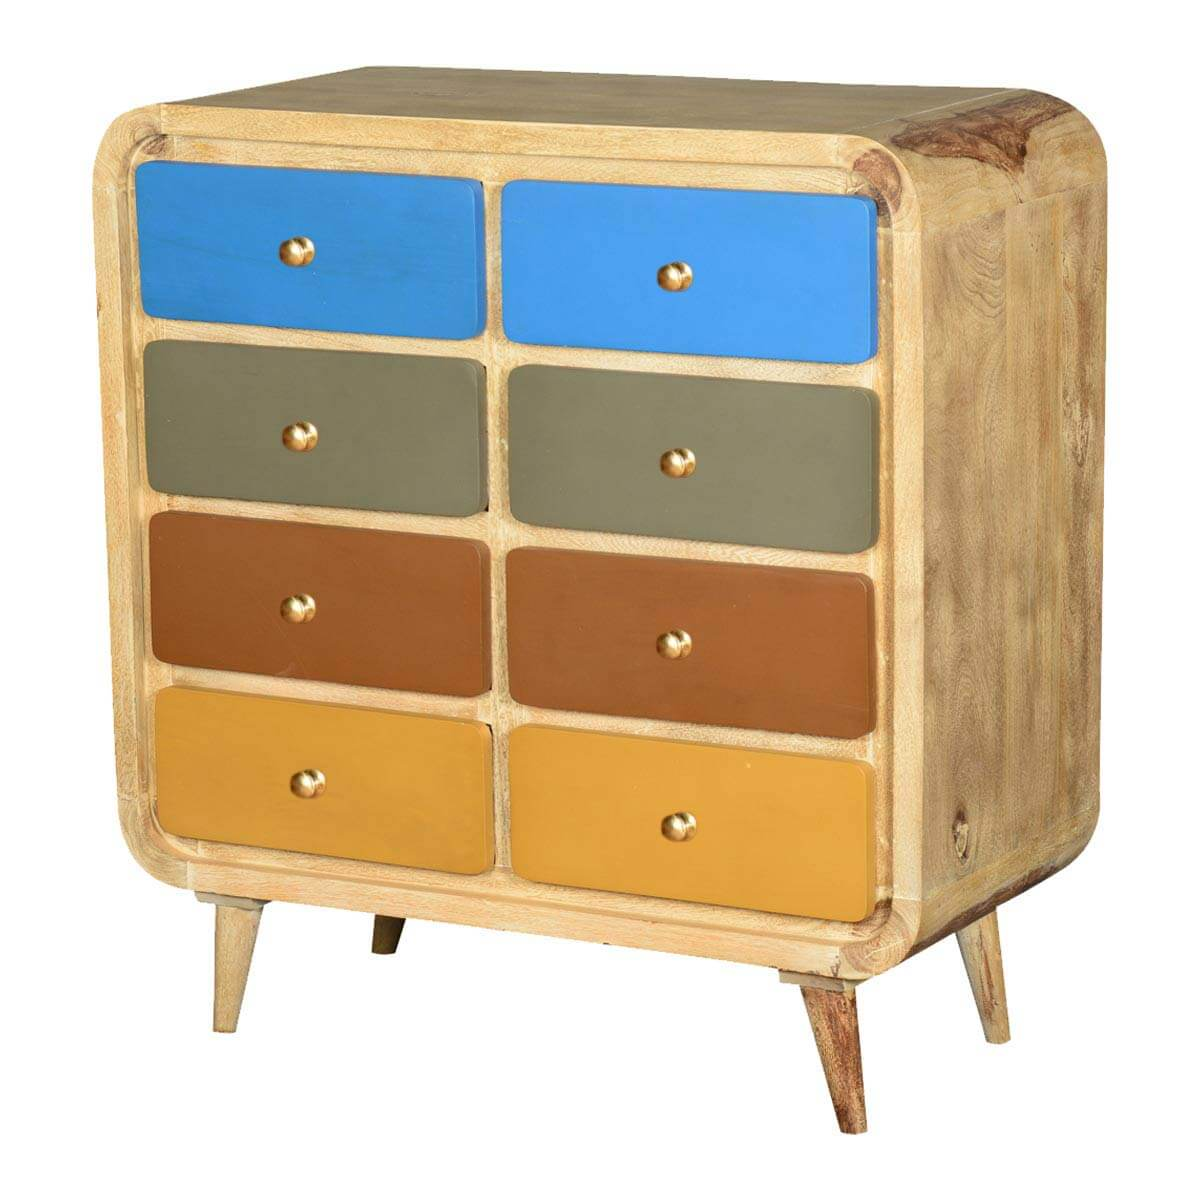 60 S Retro Rounded Corners Solid Wood 8 Drawer Double Dresser